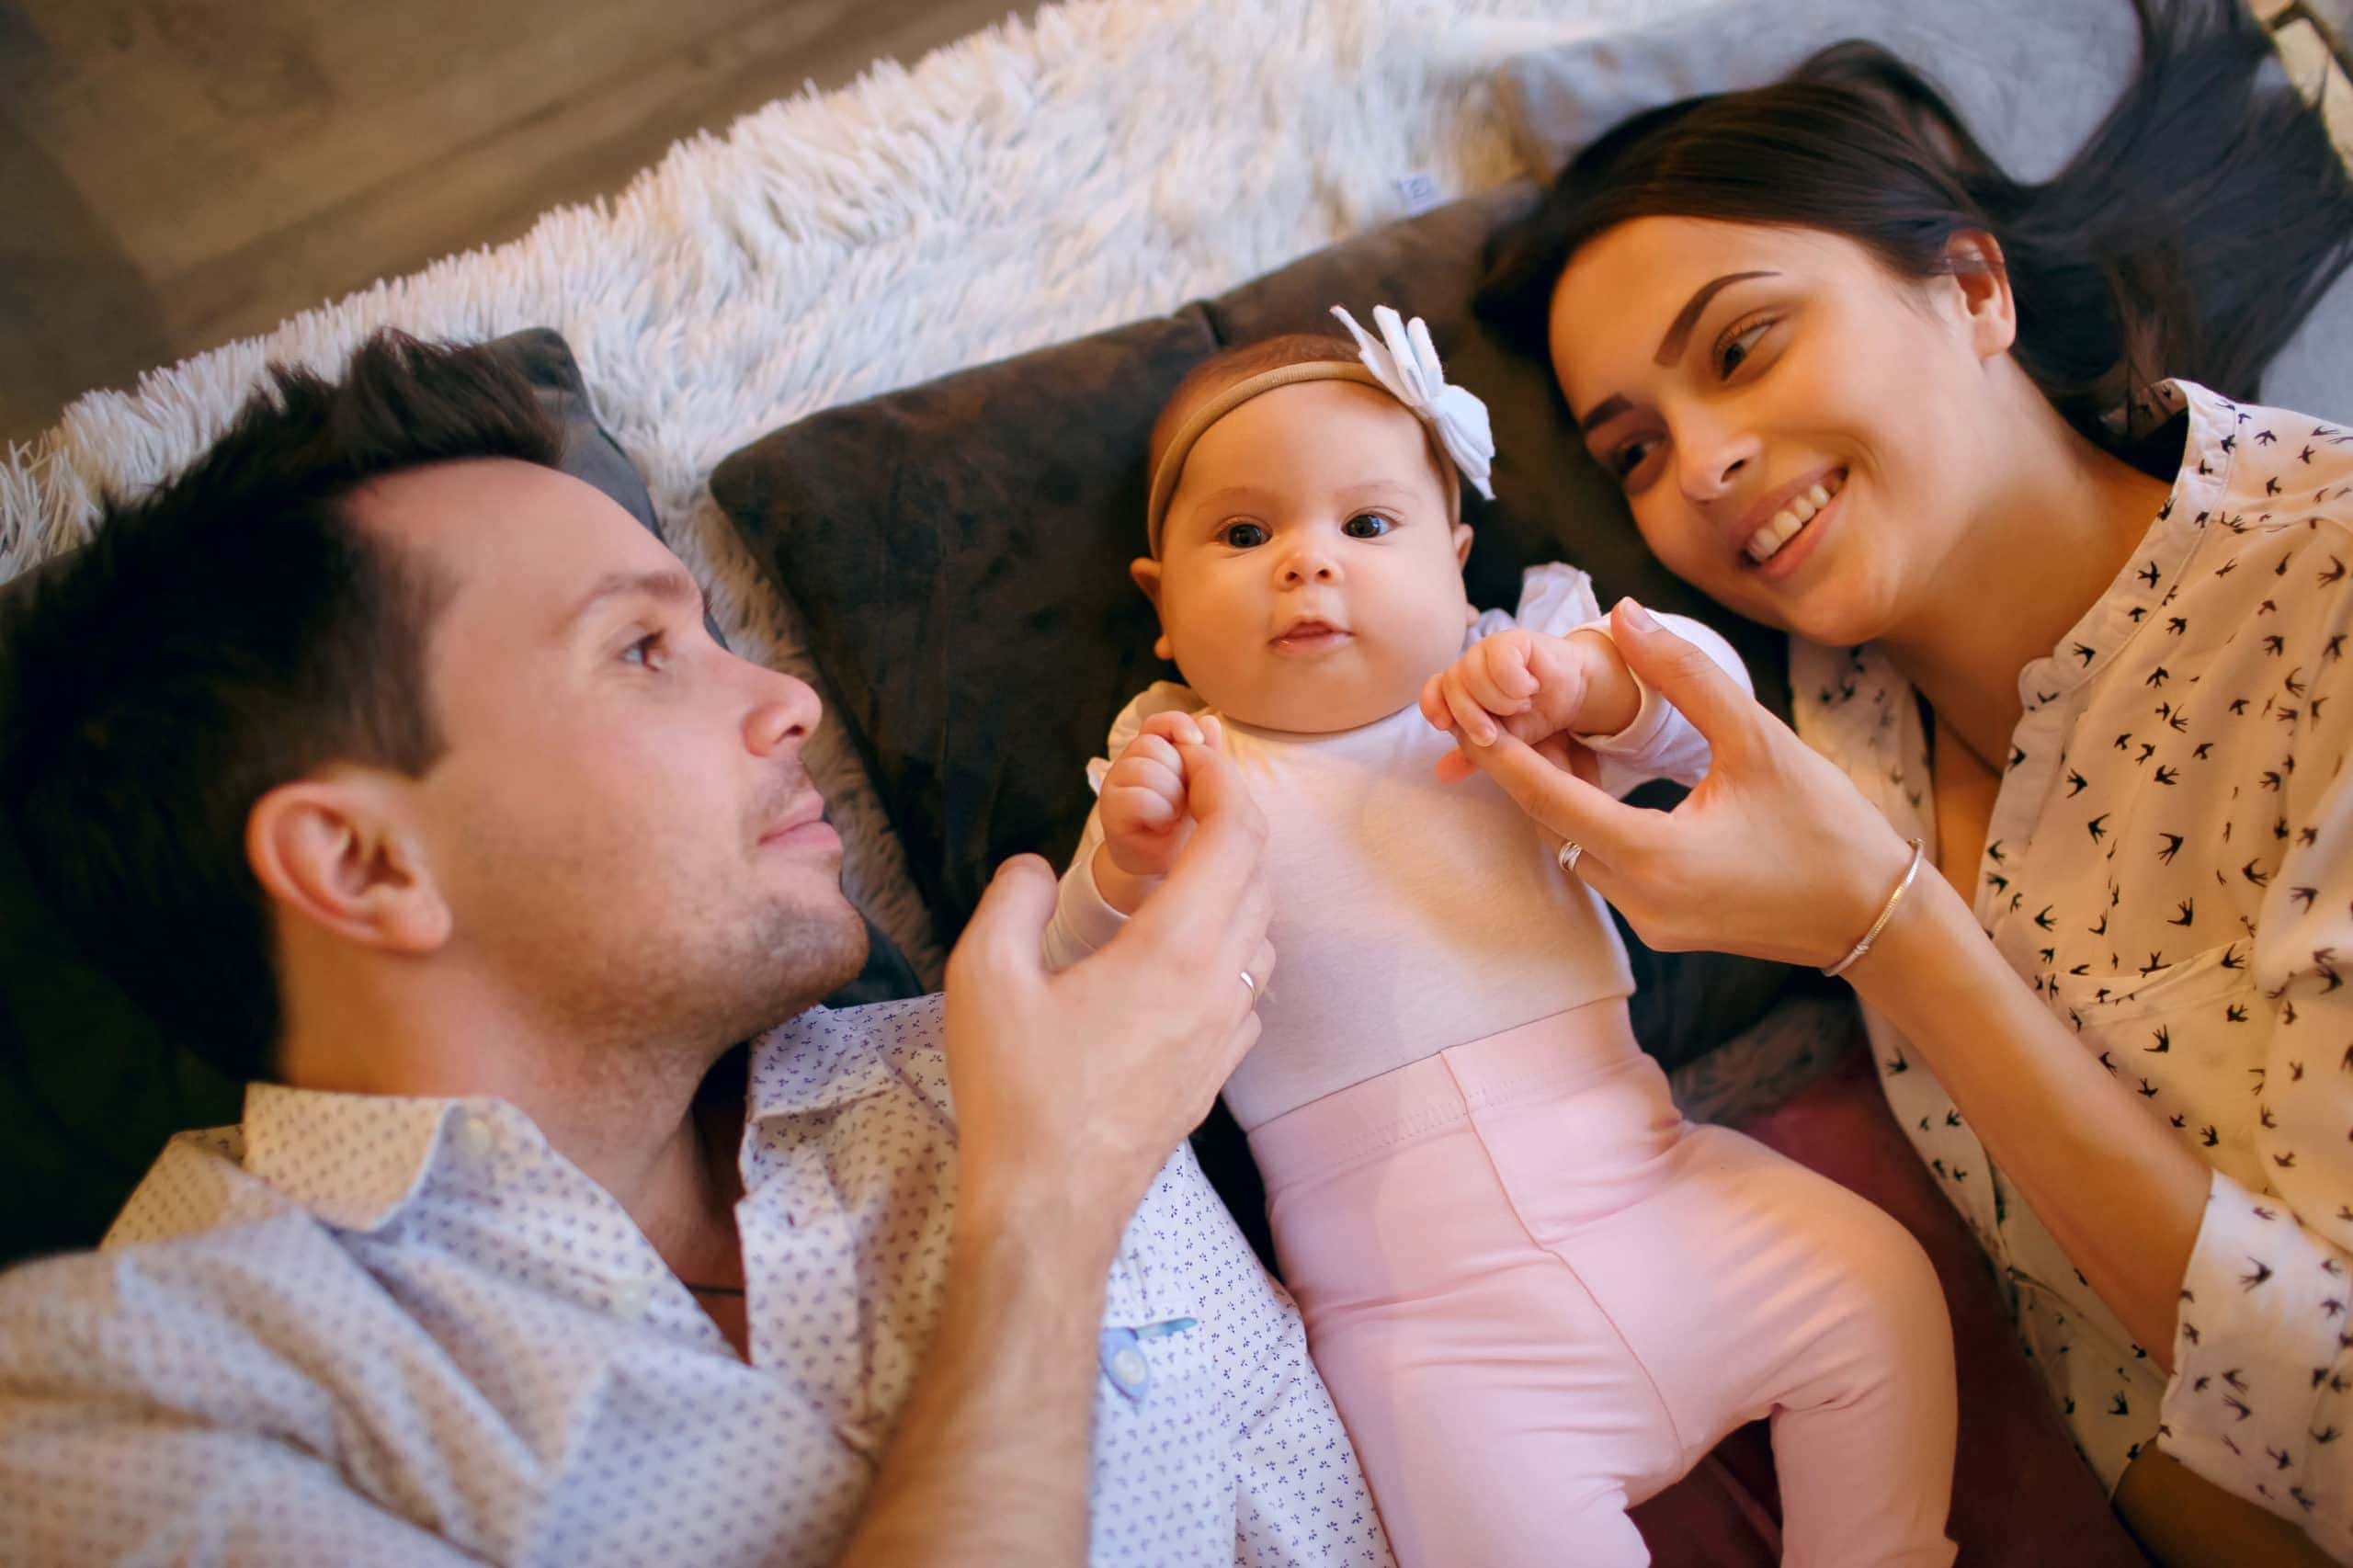 Mother-Father-couple-in-bed-with-new-baby-at home | American Pregnancy Association